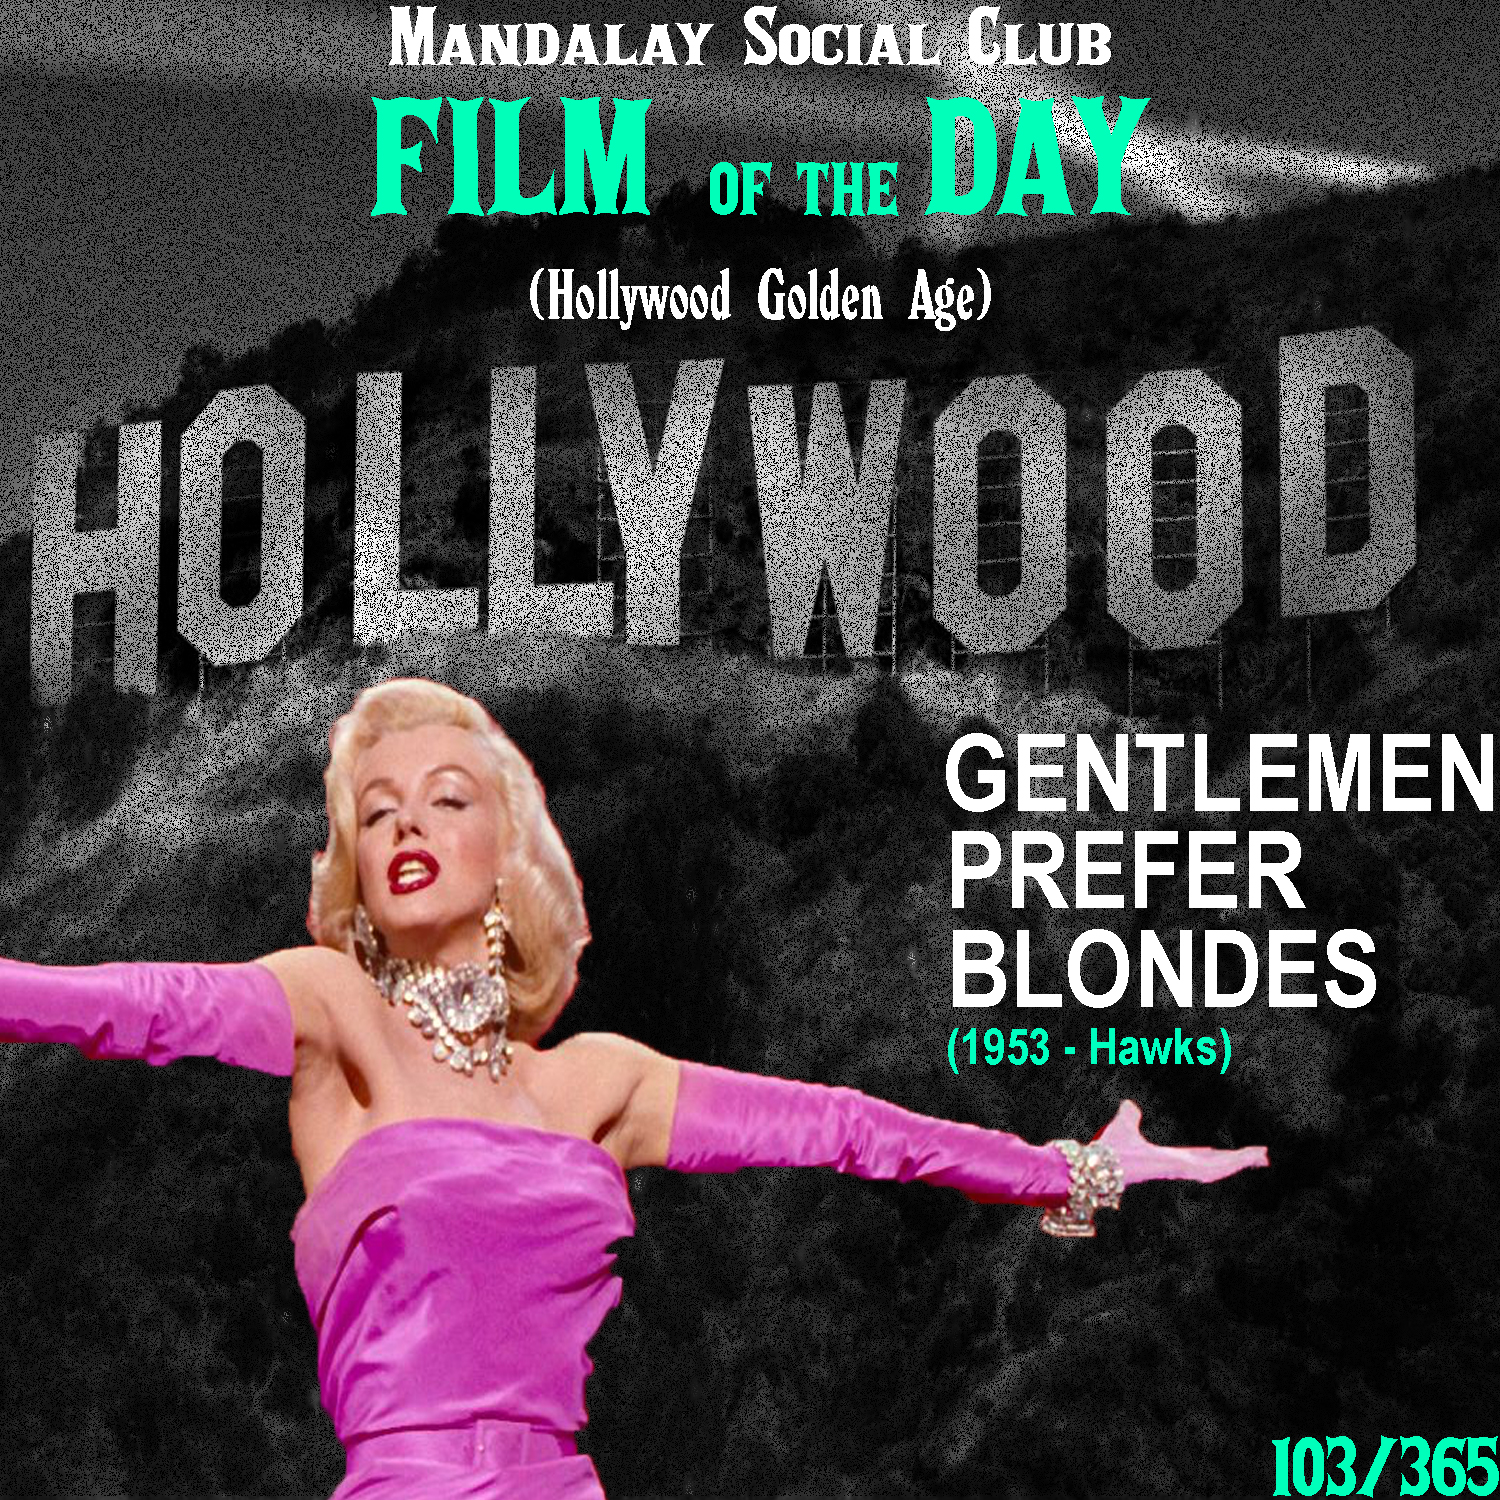 Gentlemen Prefer Blondes     (dir. Howard Hawks)   Howard Hawks is often seen as the most important filmmaker of all time. His impeccable sense for storytelling melded with his fluid and exciting use of the camera makes for some of the most memorable moments in cinema history, and  Gentlemen Prefer Blondes  is filled with moments like these.  Starring Marilyn Monroe and Jane Russell,  Gentlemen Prefer Blondes  is a story about two showgirls who set sail from the US to Europe on a luxury cruise liner. Monroes character, Lorelei is engaged to be married to some dopey nerd because he has a lot of money. Russell's character, Dorothy, however has a much different approach to men, in that she's simply interested in the most attractive men life has to offer. Whilese these two very different friends spend time on this ship, they start to realize that Lorelei's fiancé has sent an investigator on the ship to make sure that she remains faithful to him while he's away/  Moments from this film have been constantly parodied and paid homage to, specifically with Monroe's 'Diamonds are a Girl's Best Friend' routine.  Hawks' film is a big reason why Monroe became such a staple in pop culture as both her and Russell's performances were thoroughly praised by fans and critics alike.  Gentlemen  is the perfect musical to highlight the Golden Age of Hollywood's true form.    4/5     WATCH: iTunes